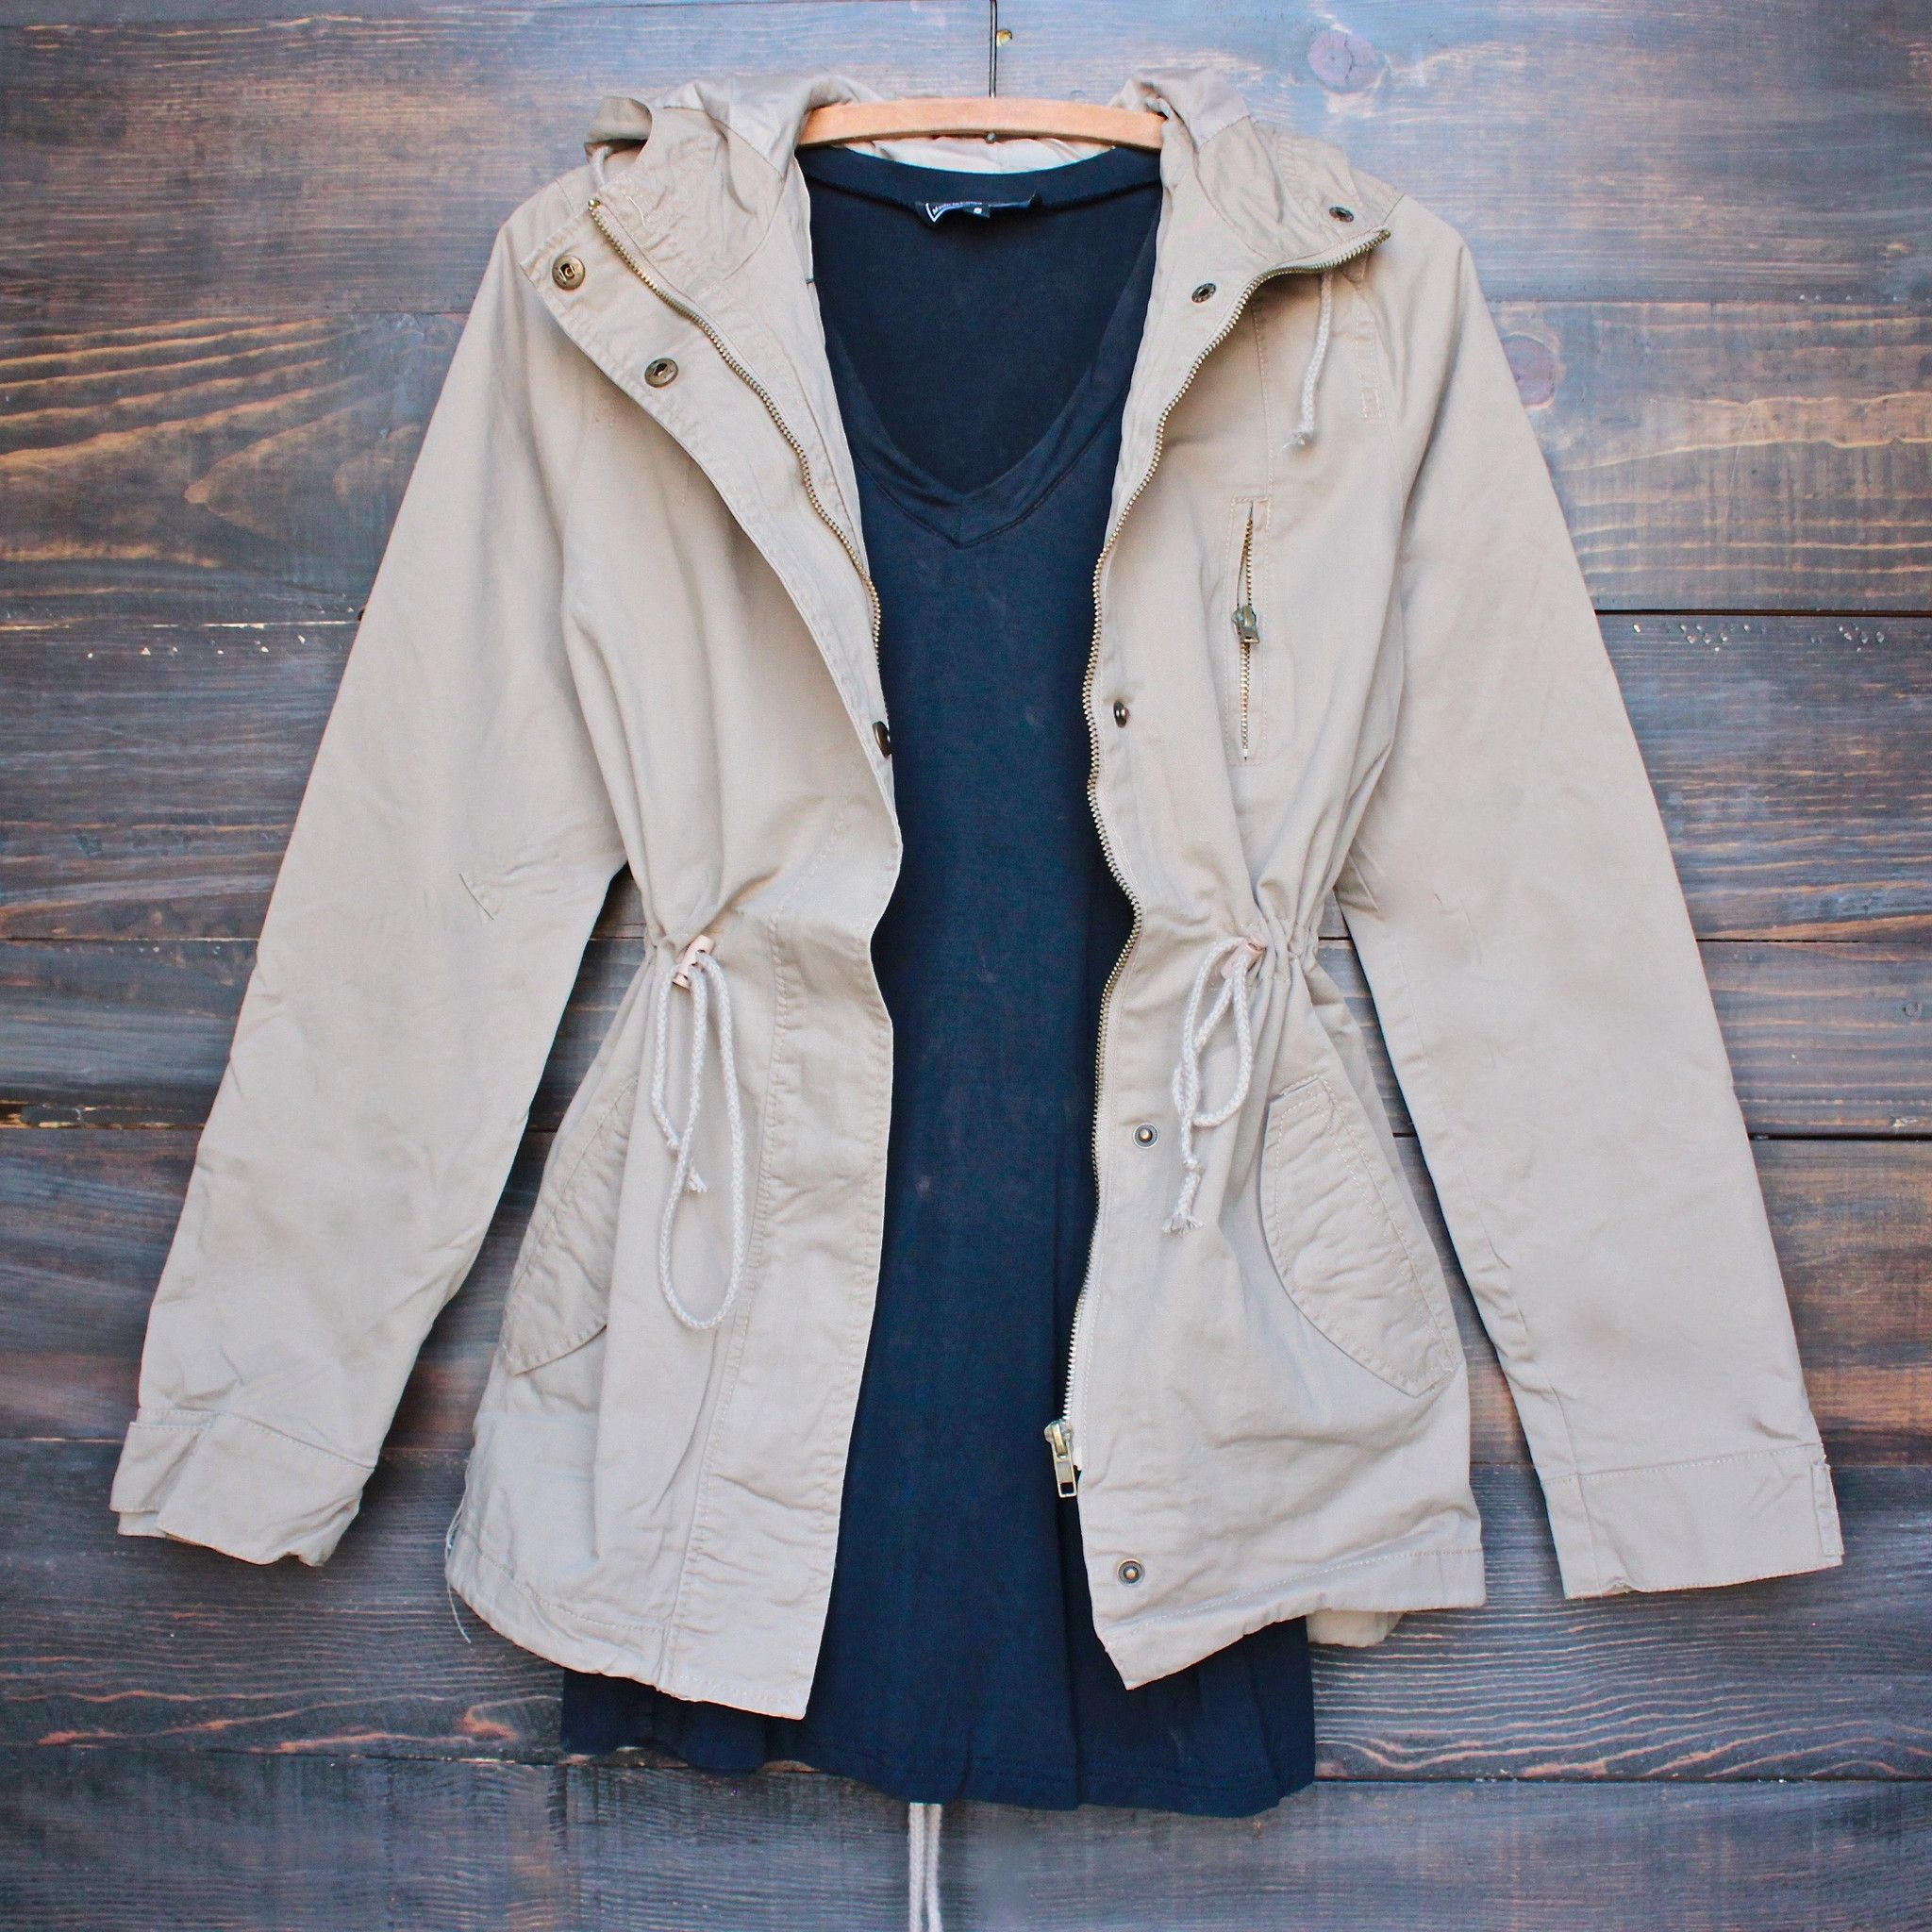 Utility parka jacket - olive green | Drawstring waist, Khakis and ...